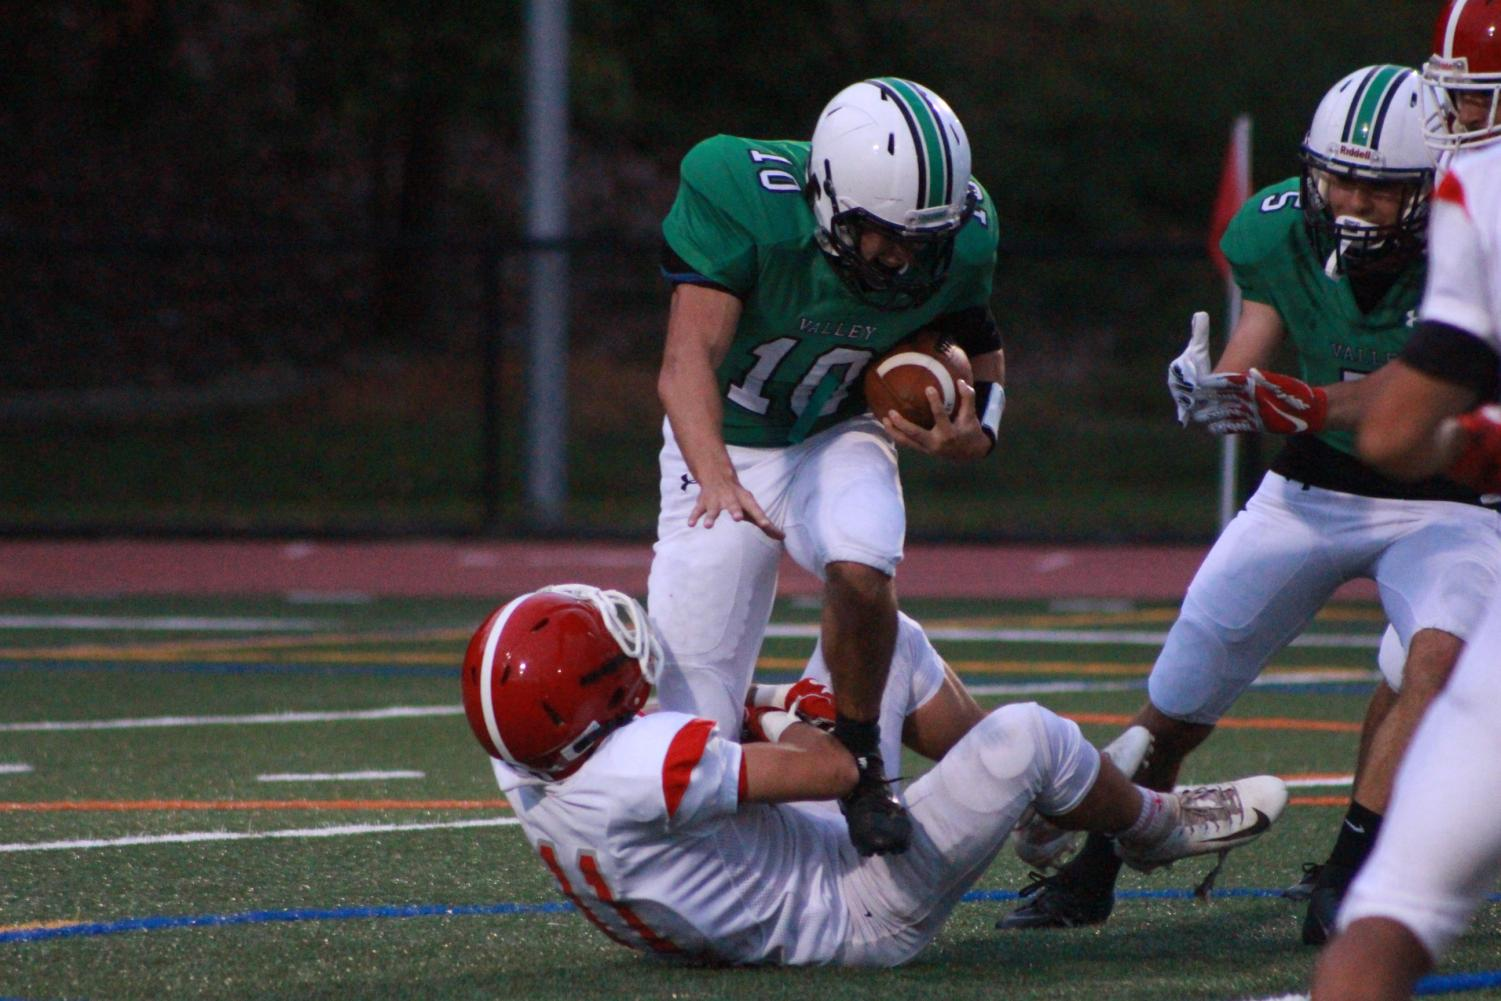 Senior Stephen Soravilla (10) returns an interception against Ridgefield Park. Soravilla recorded an interception and blocked a punt.